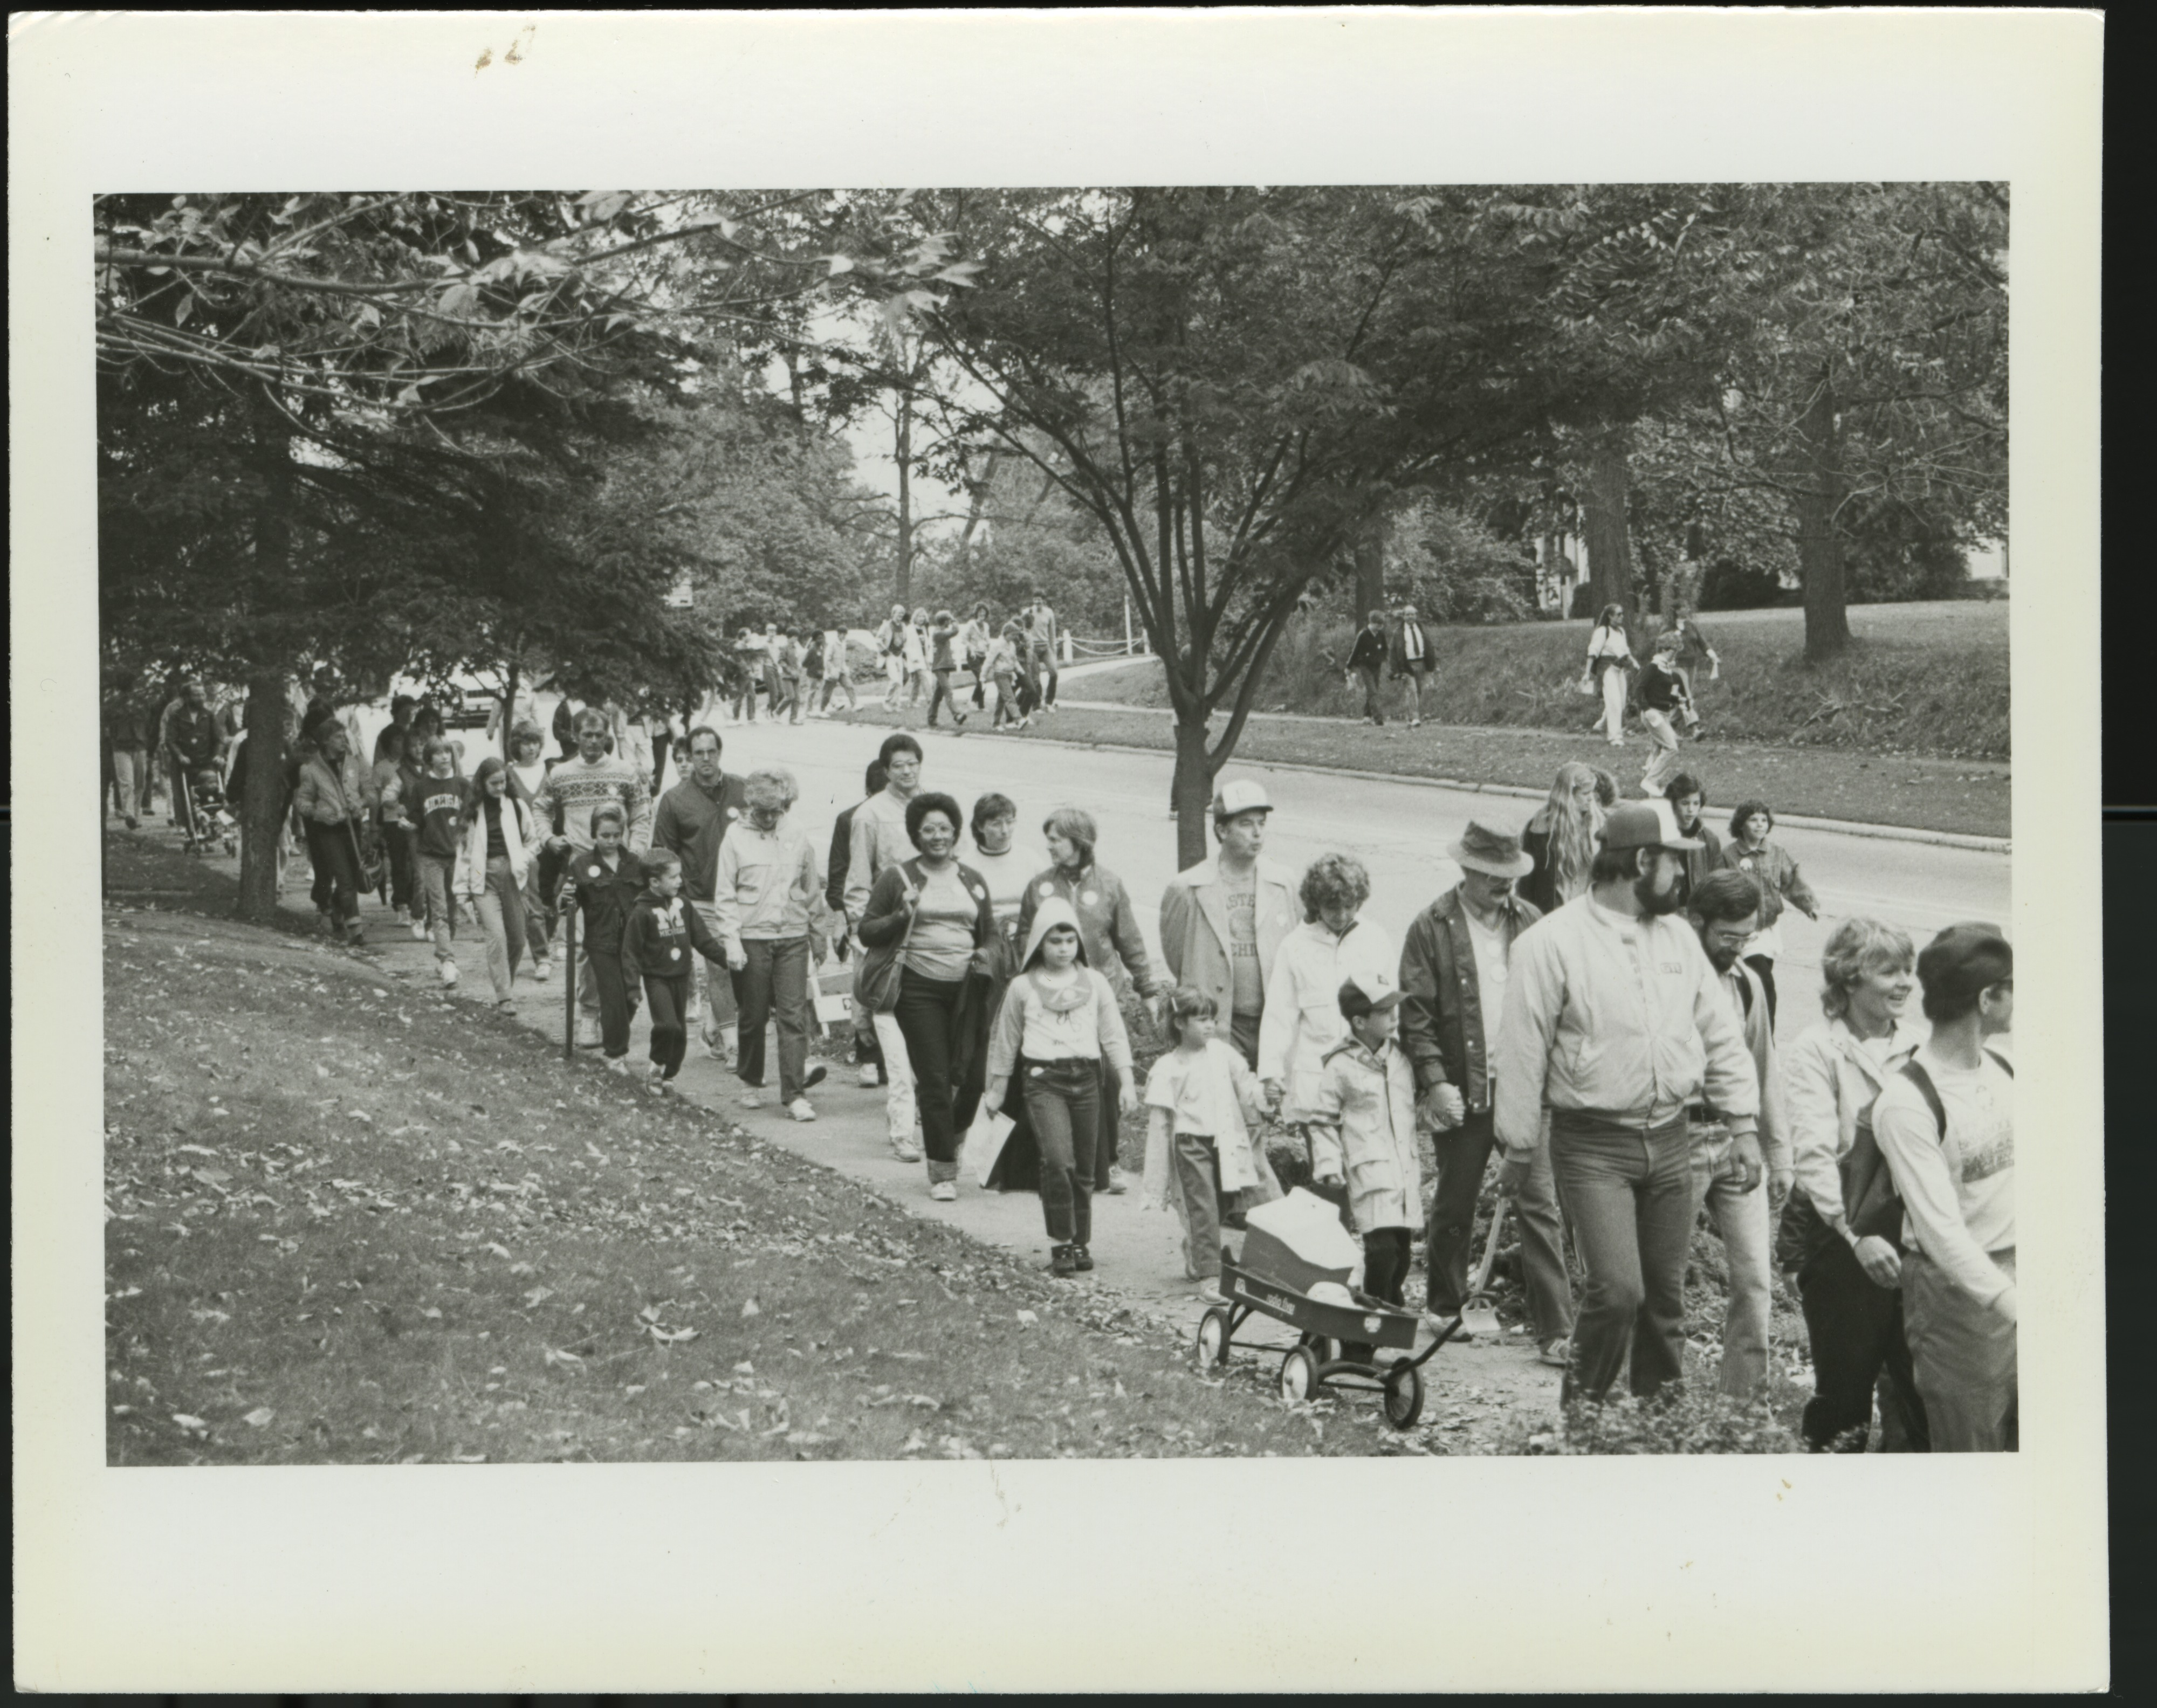 Interfaith Council for Peace and Justice: Crop Walk, 1986 image